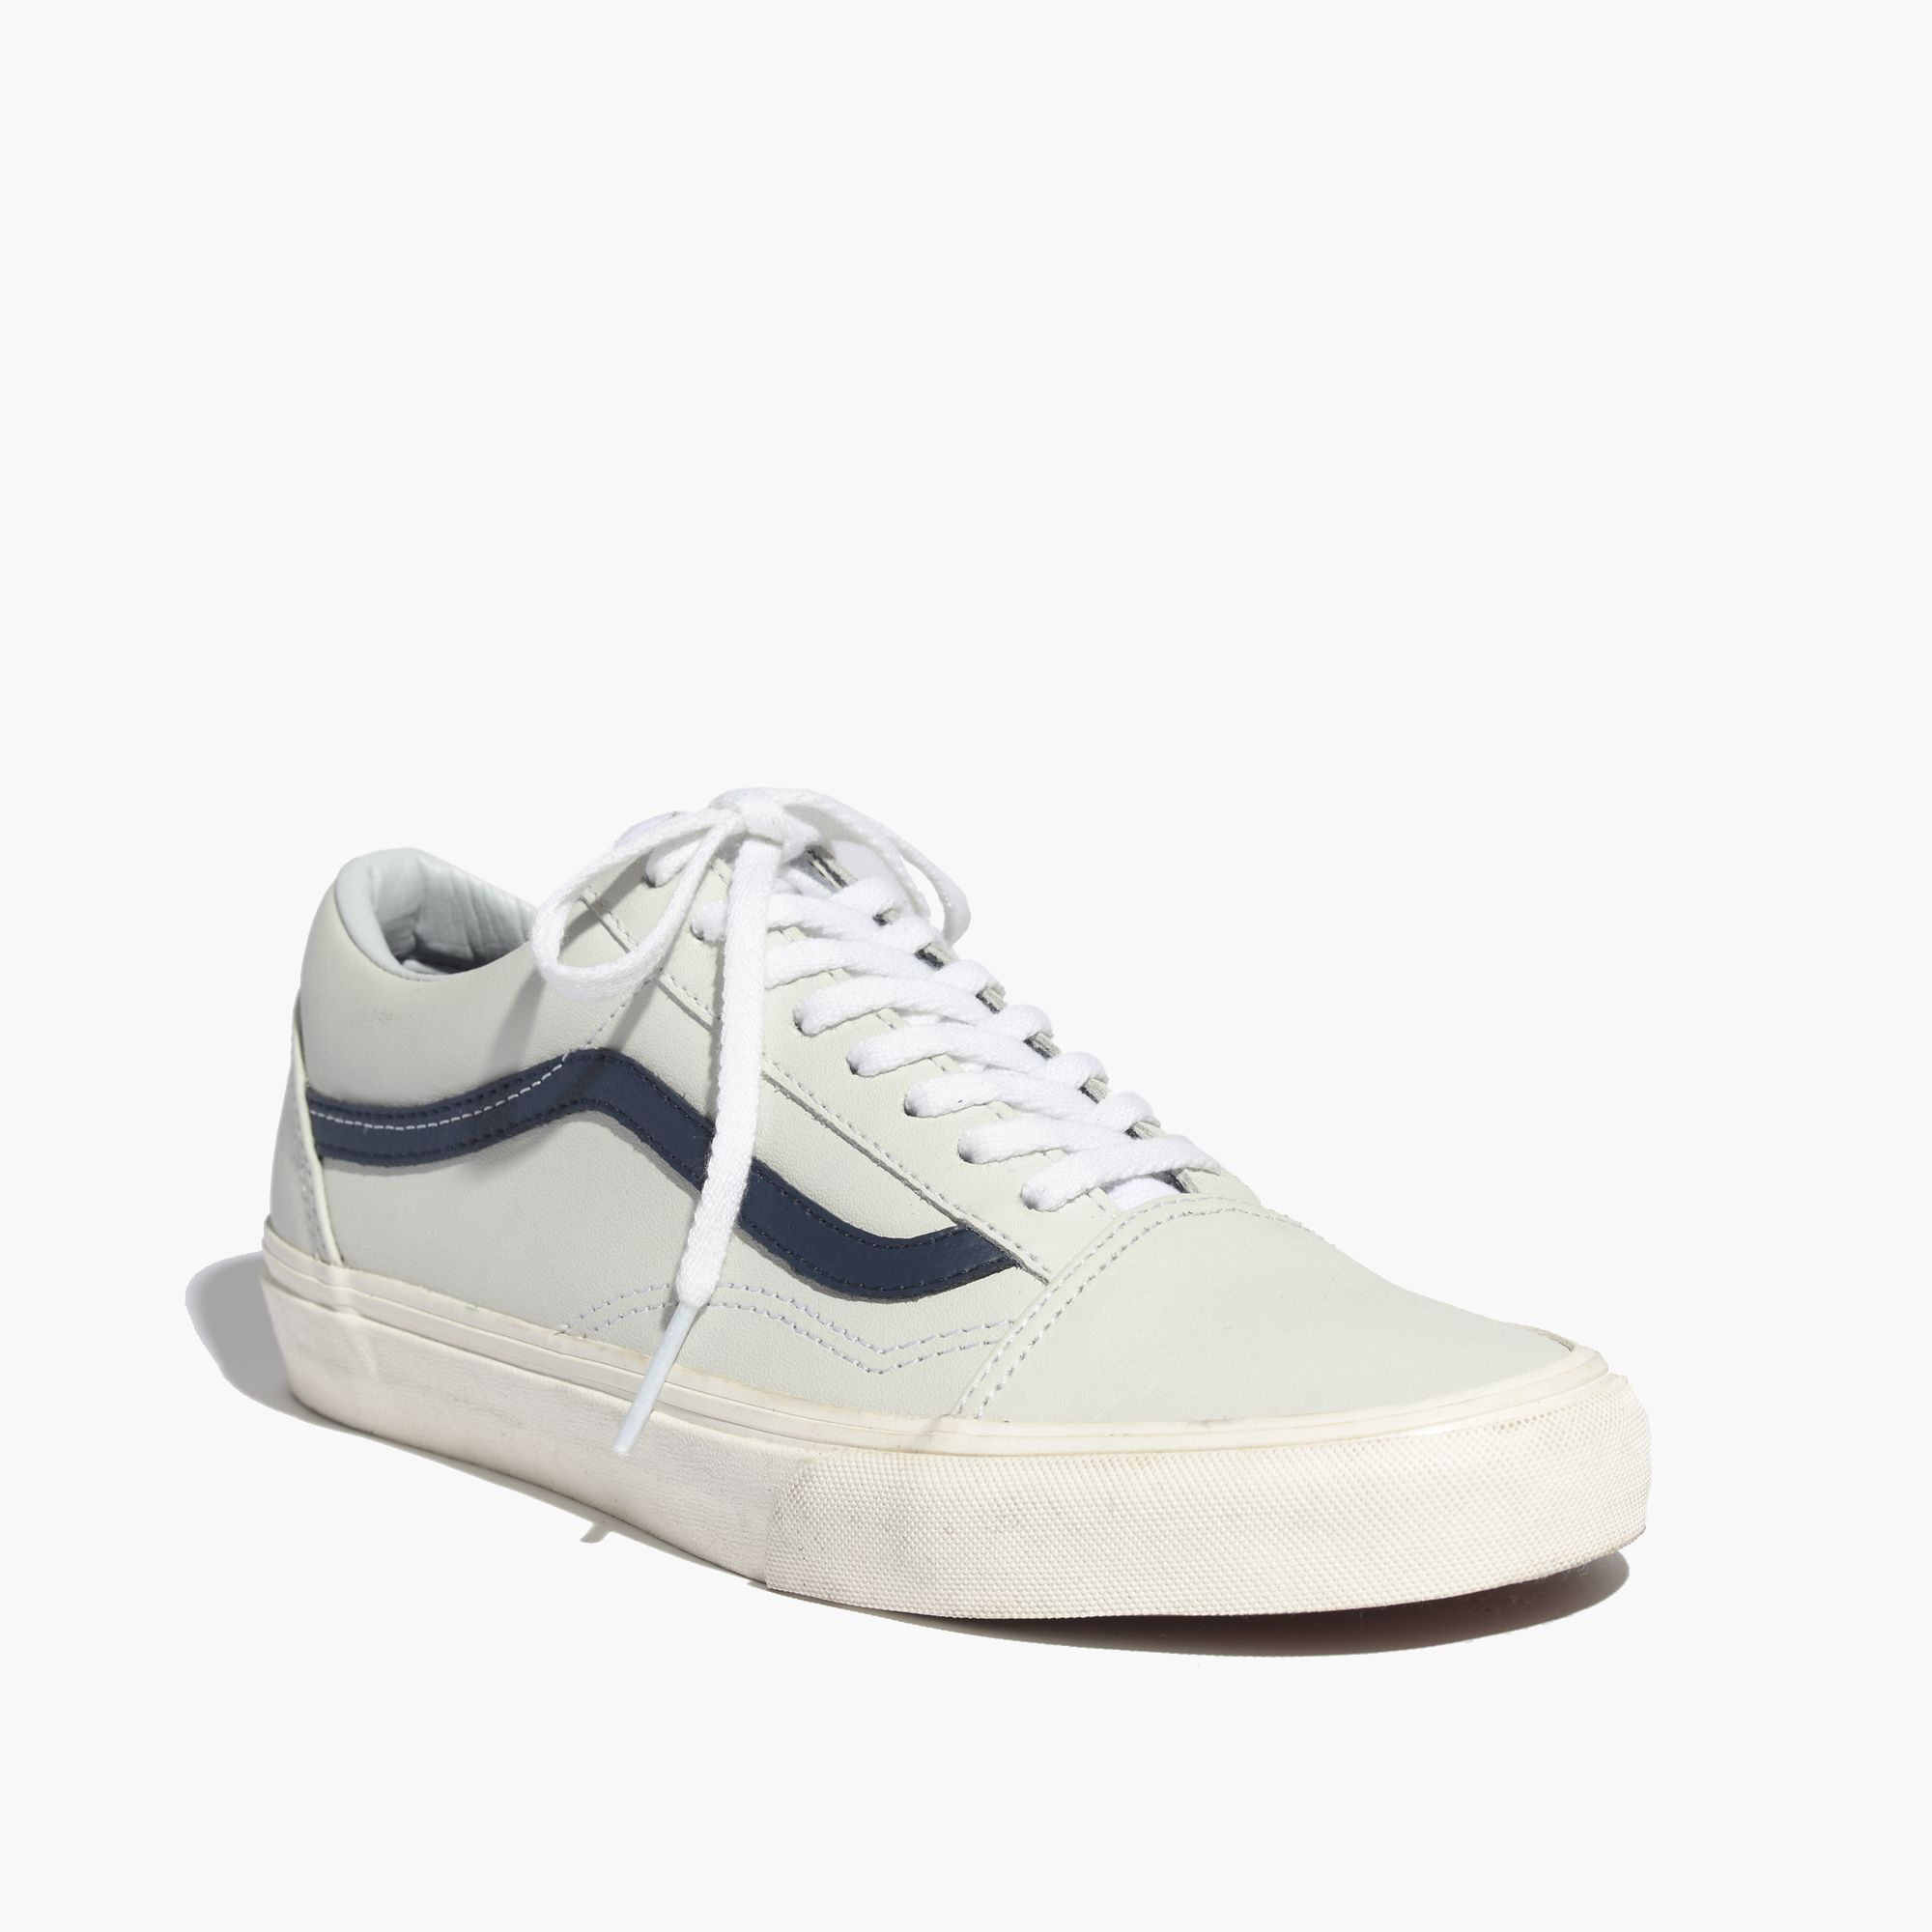 cdc5971c8035 Madewell Vans® Old Skool Lace-Up Sneakers In Leather in White - Lyst